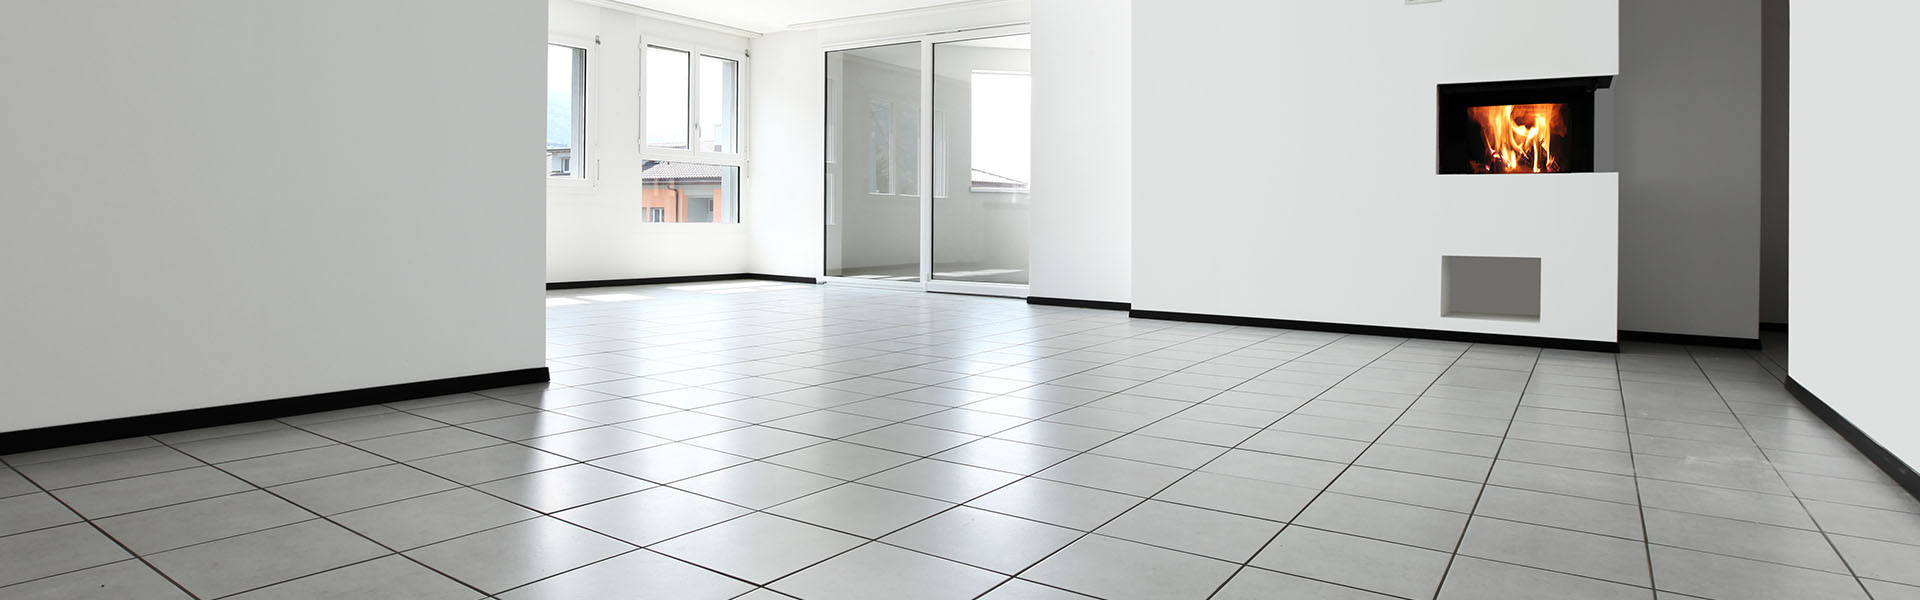 White vinyl floor tile